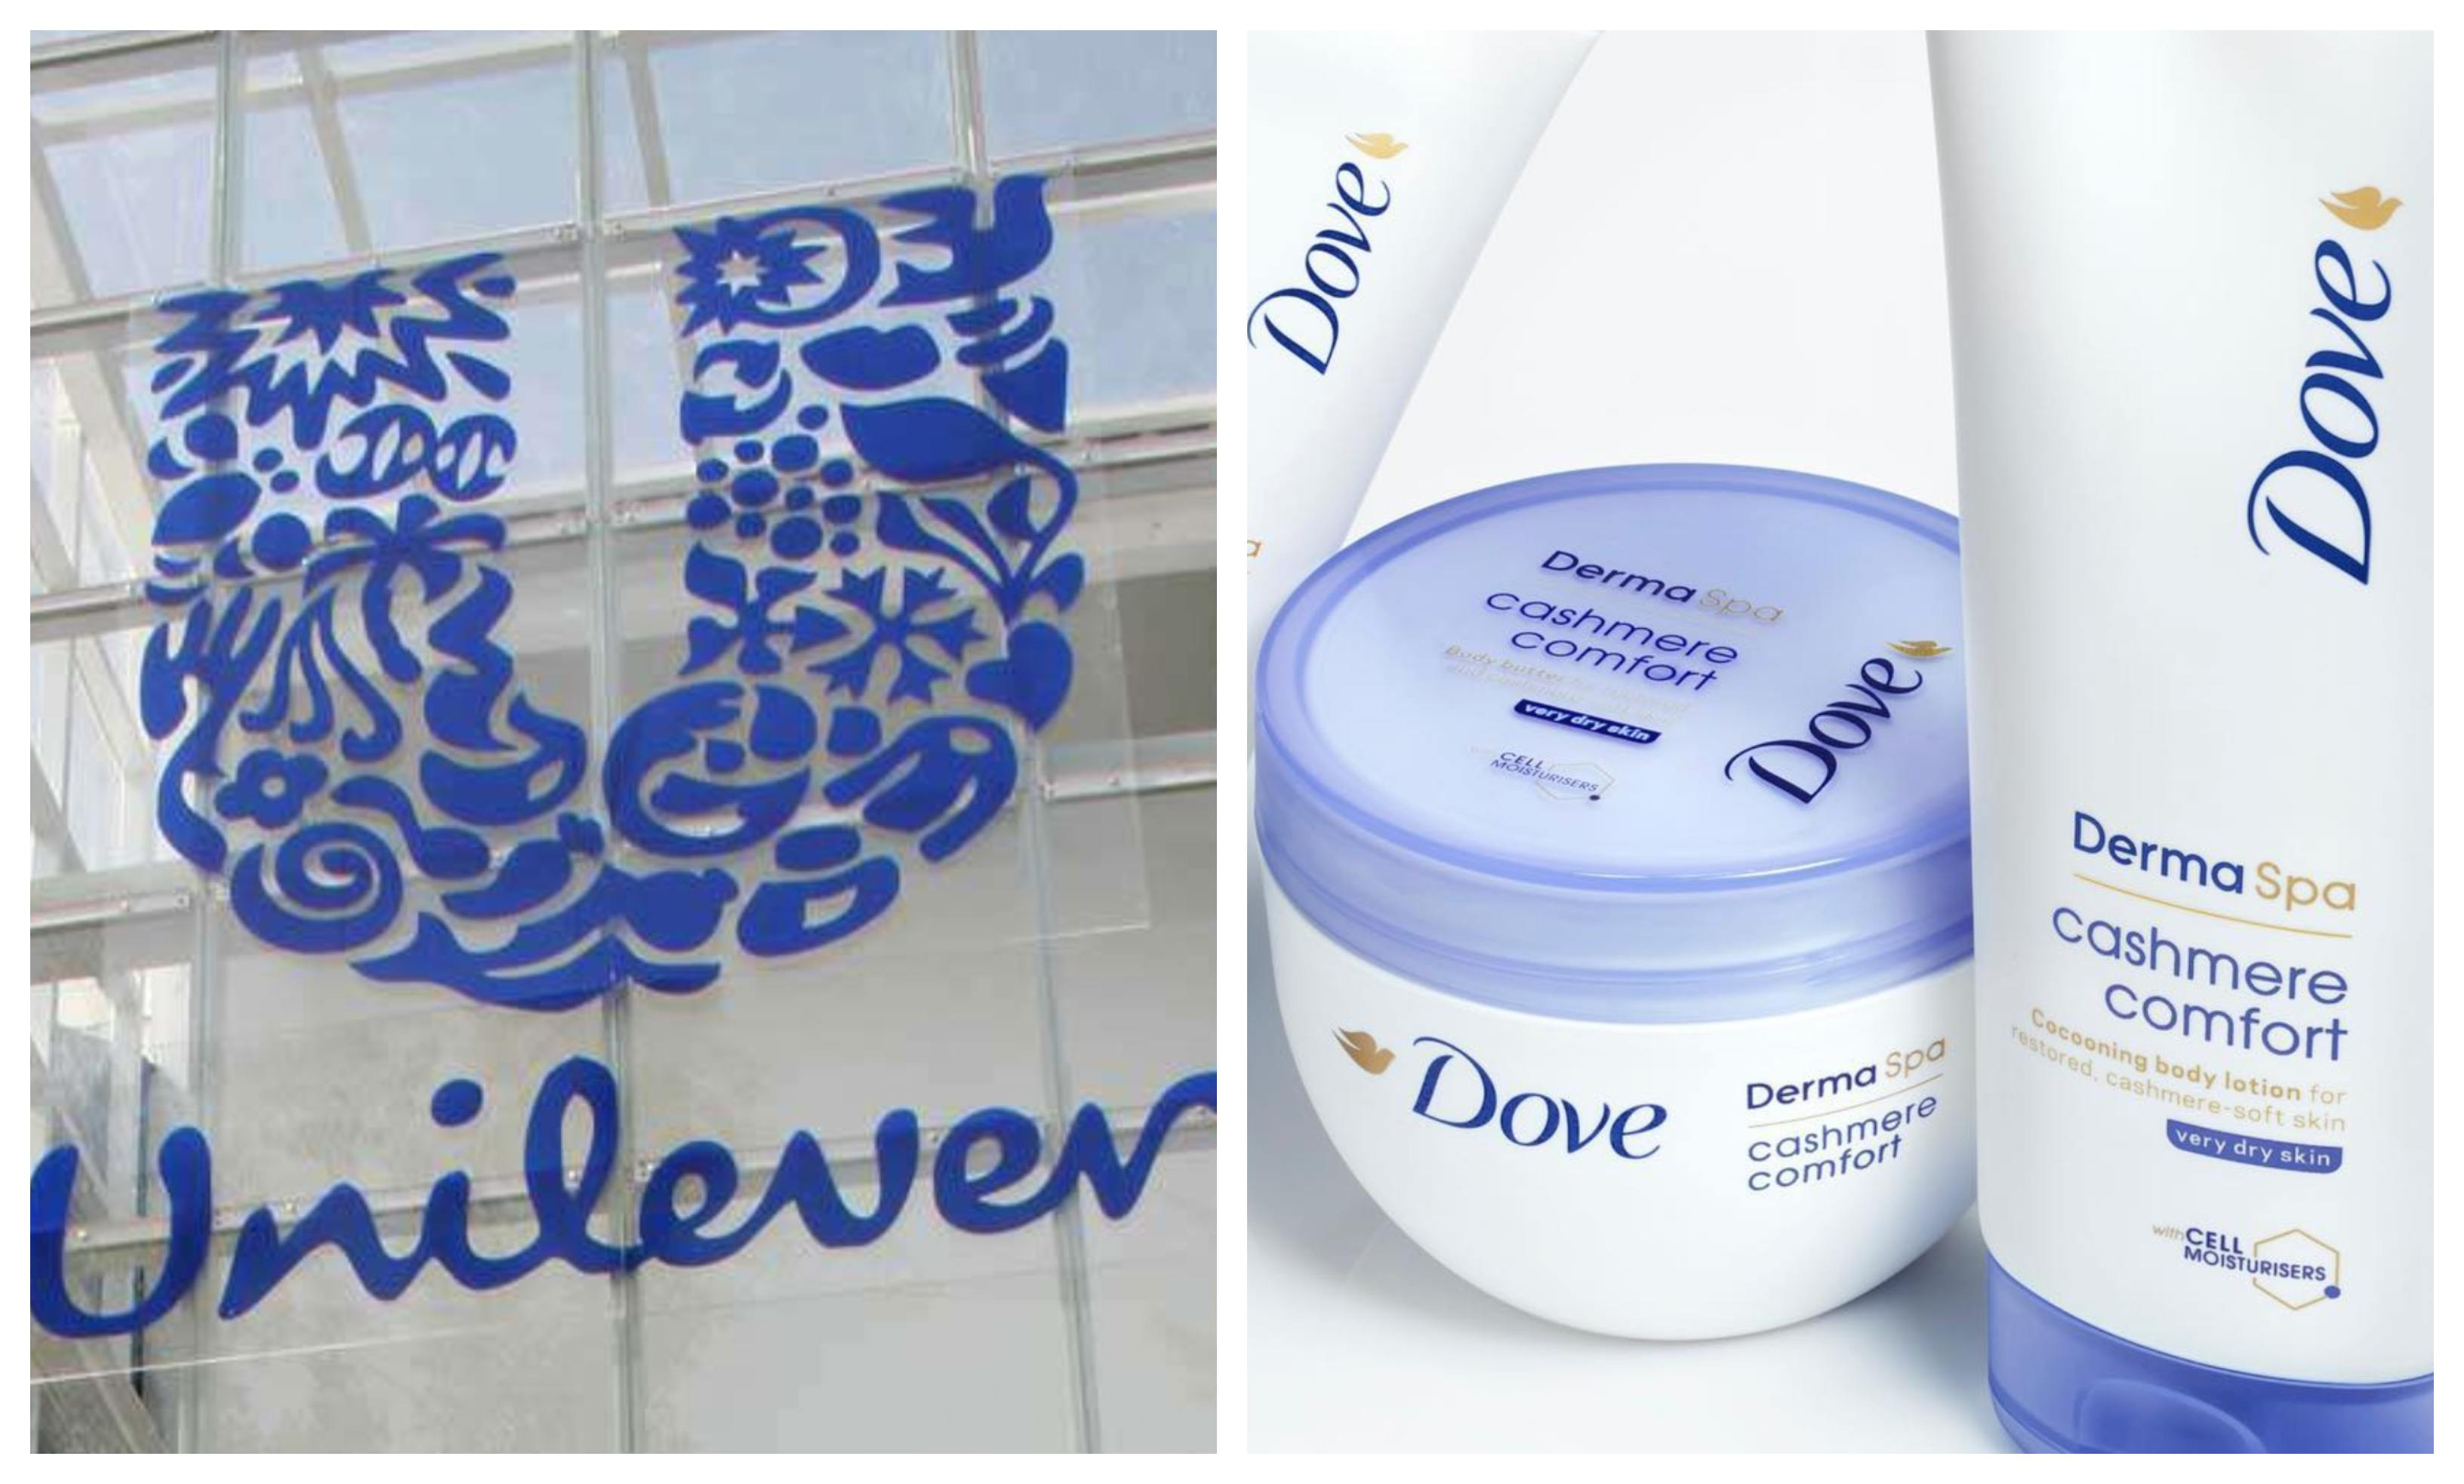 Unilever logo and products by Dove